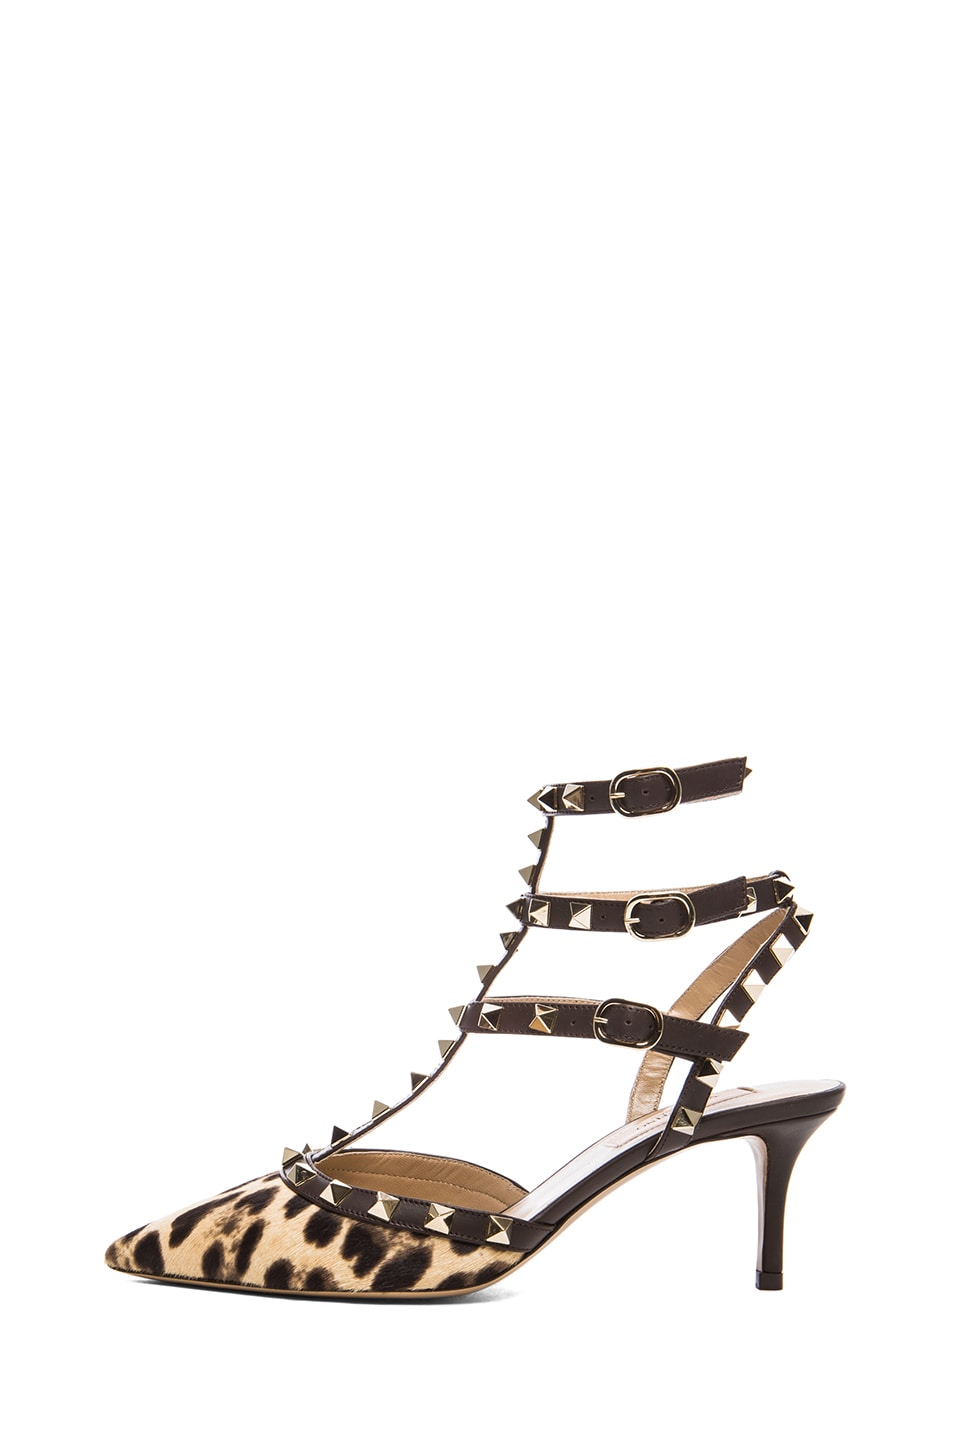 Image 1 of Valentino Rockstud Leather & Calf Hair Slingbacks T.65 in Leopard